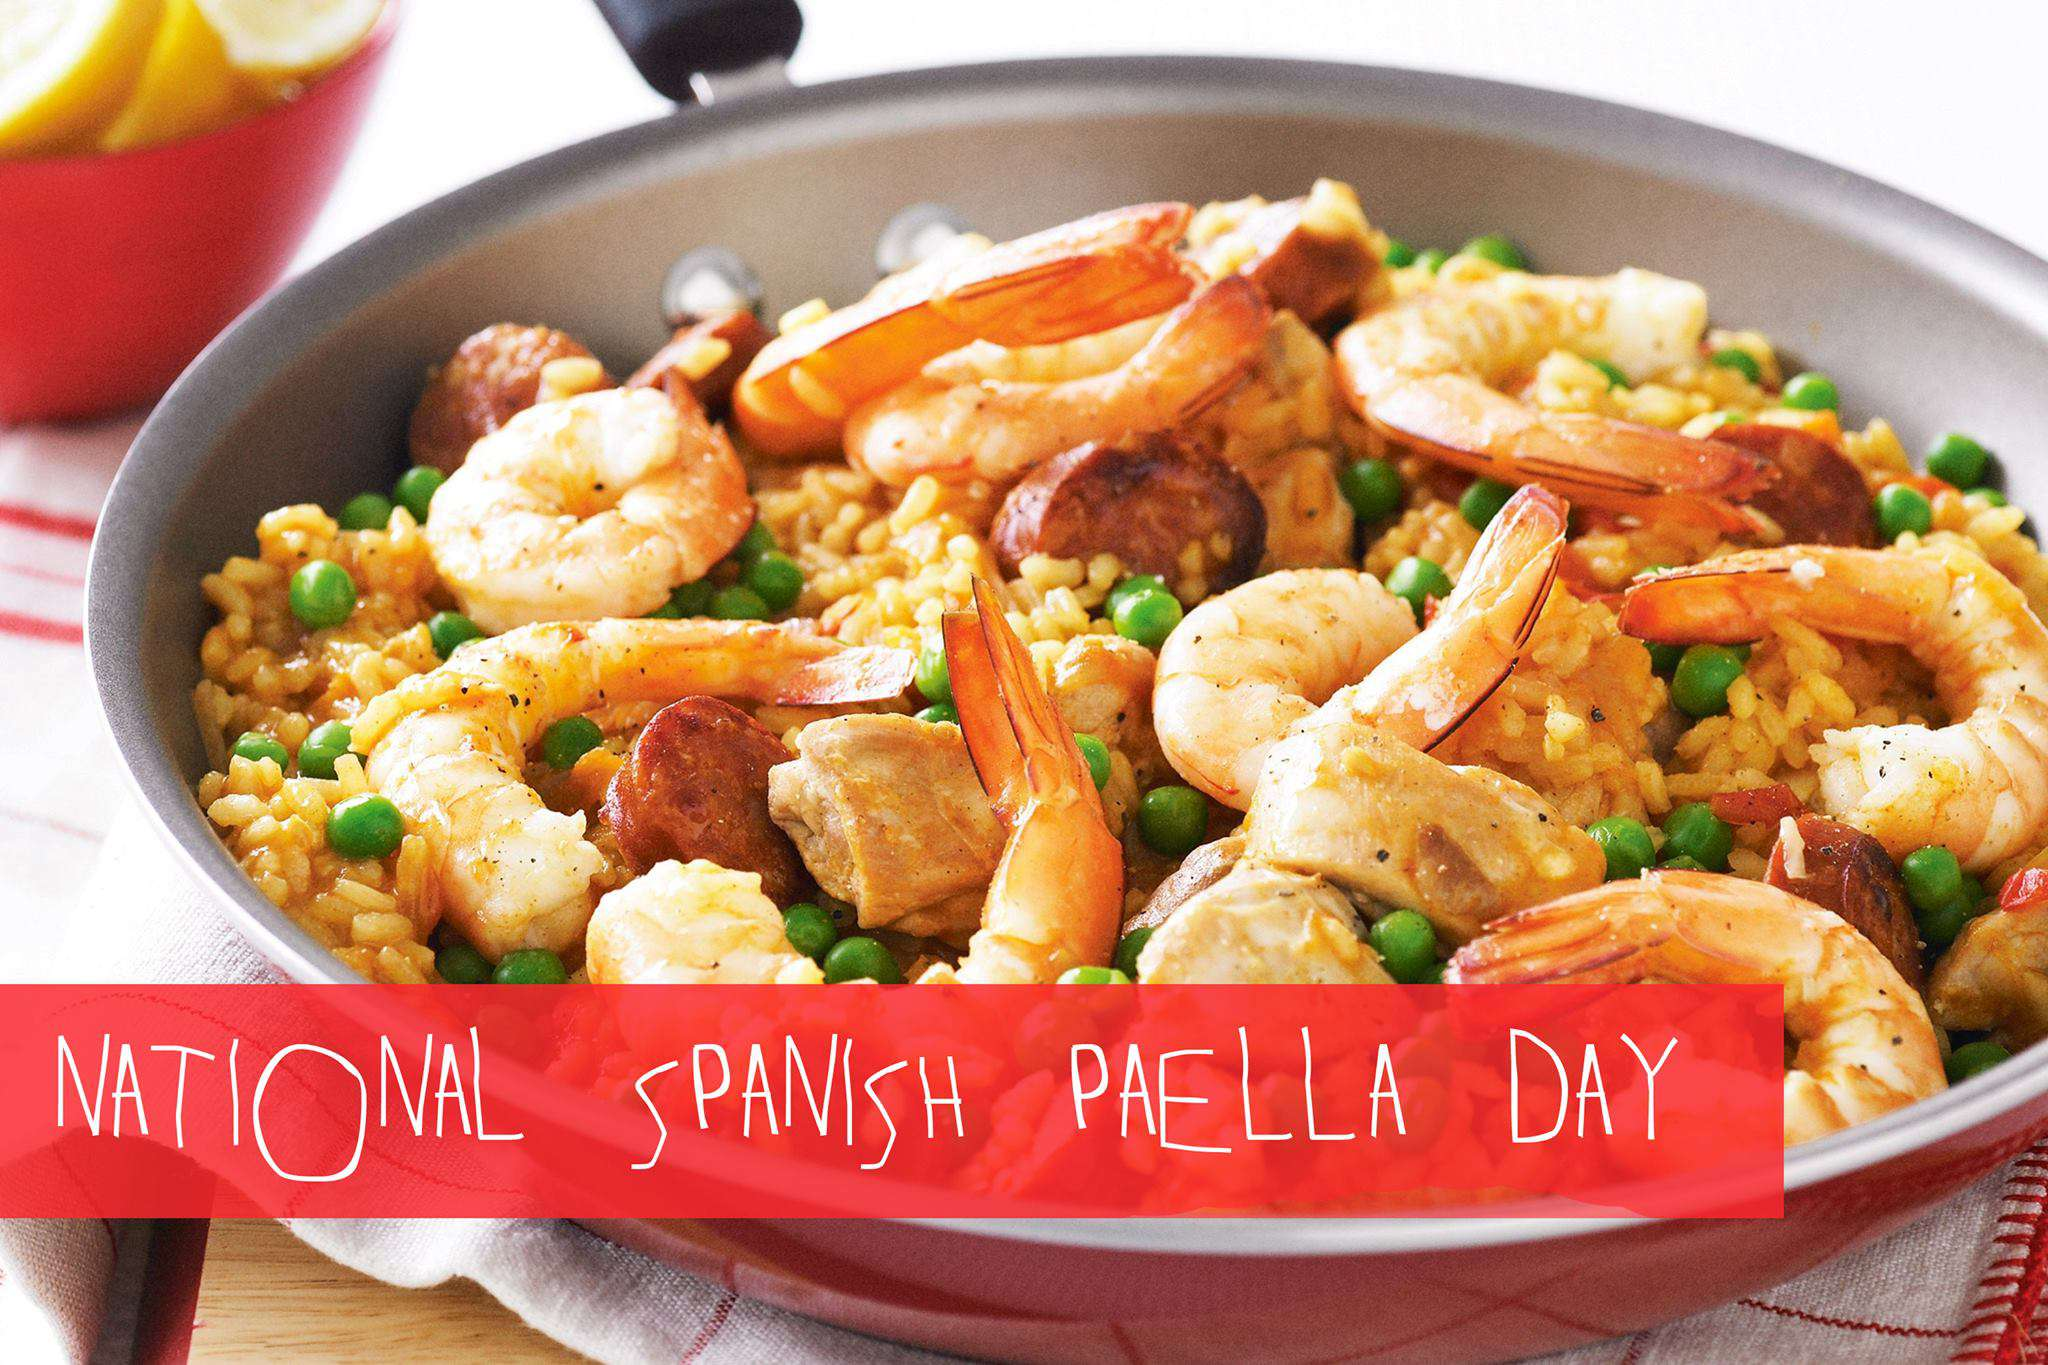 National Spanish Paella Day Wishes Images download